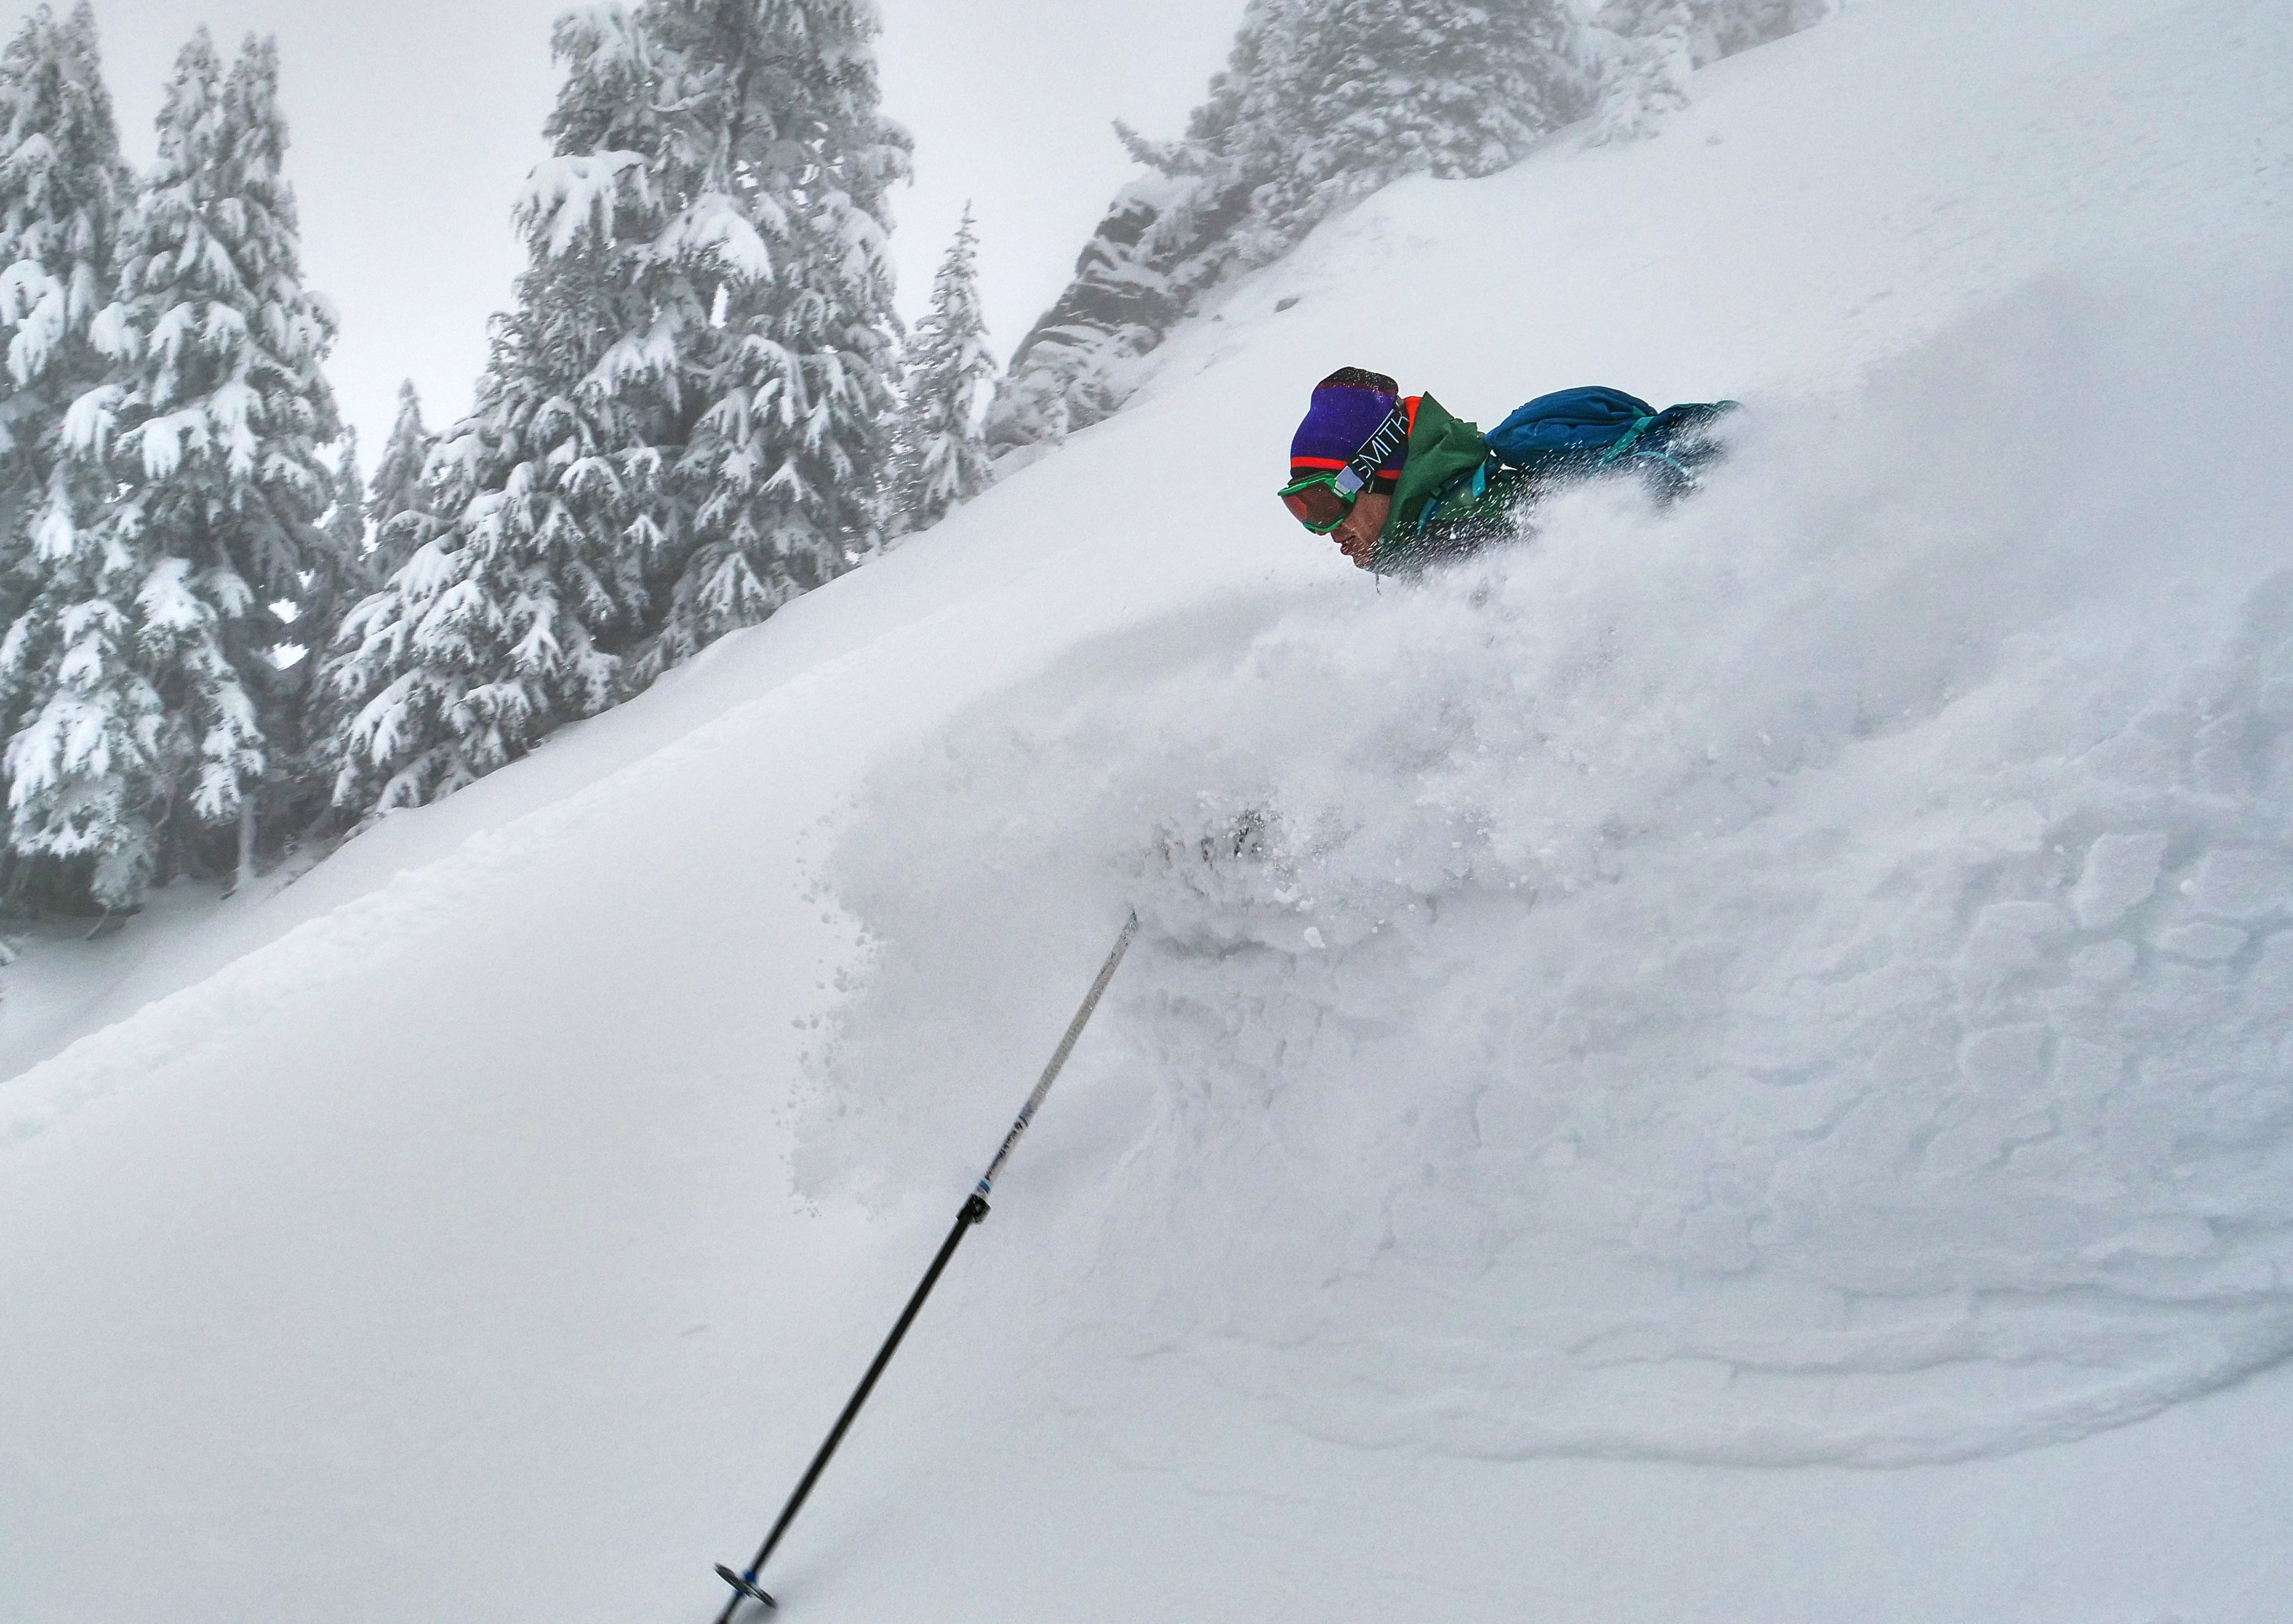 Surfing the powder wave